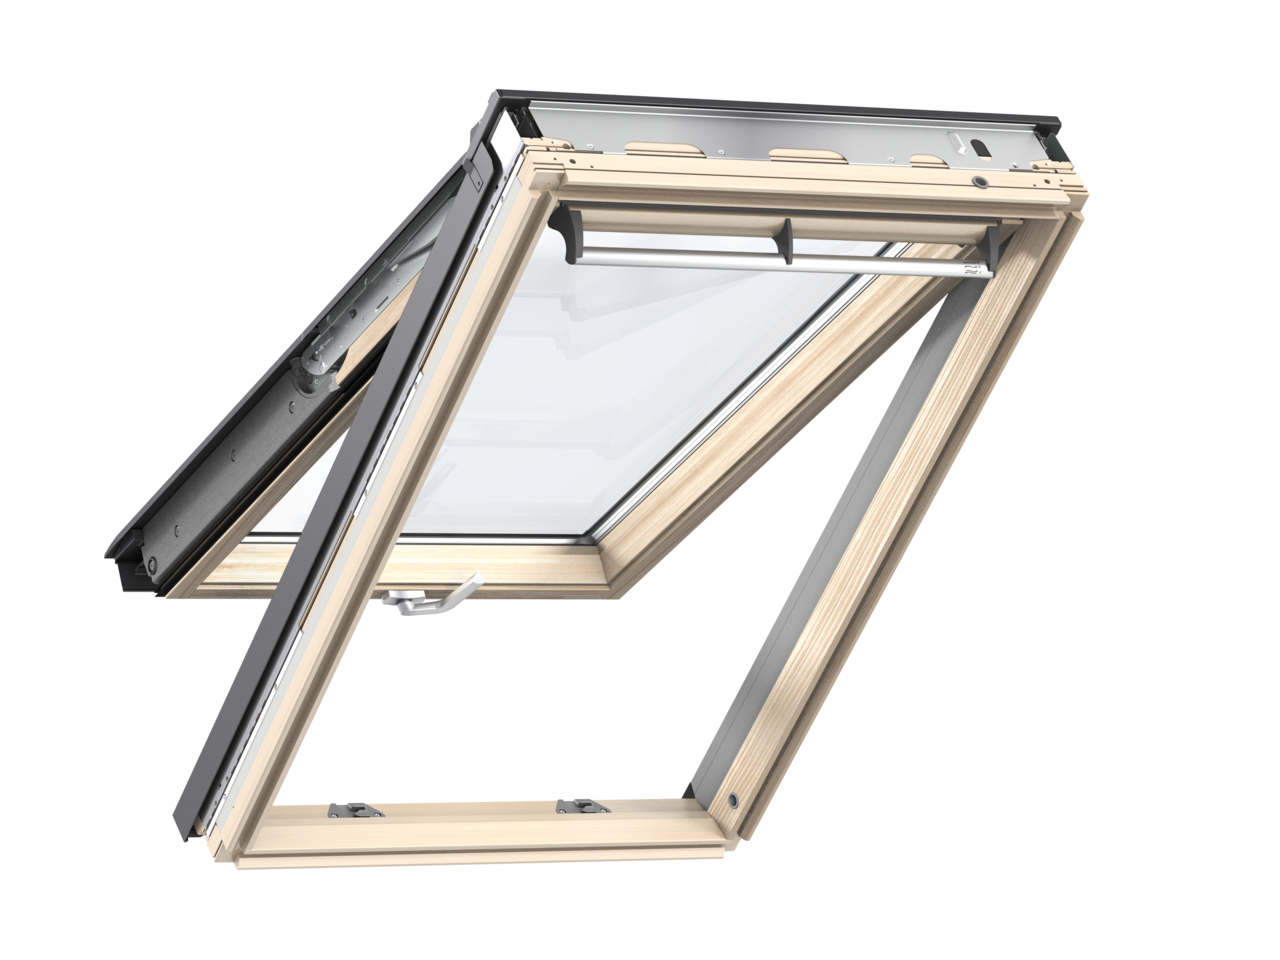 Velux GPL PK08 940 x 1400mm Top Hung Standard 70Pane Roof Window - Pine